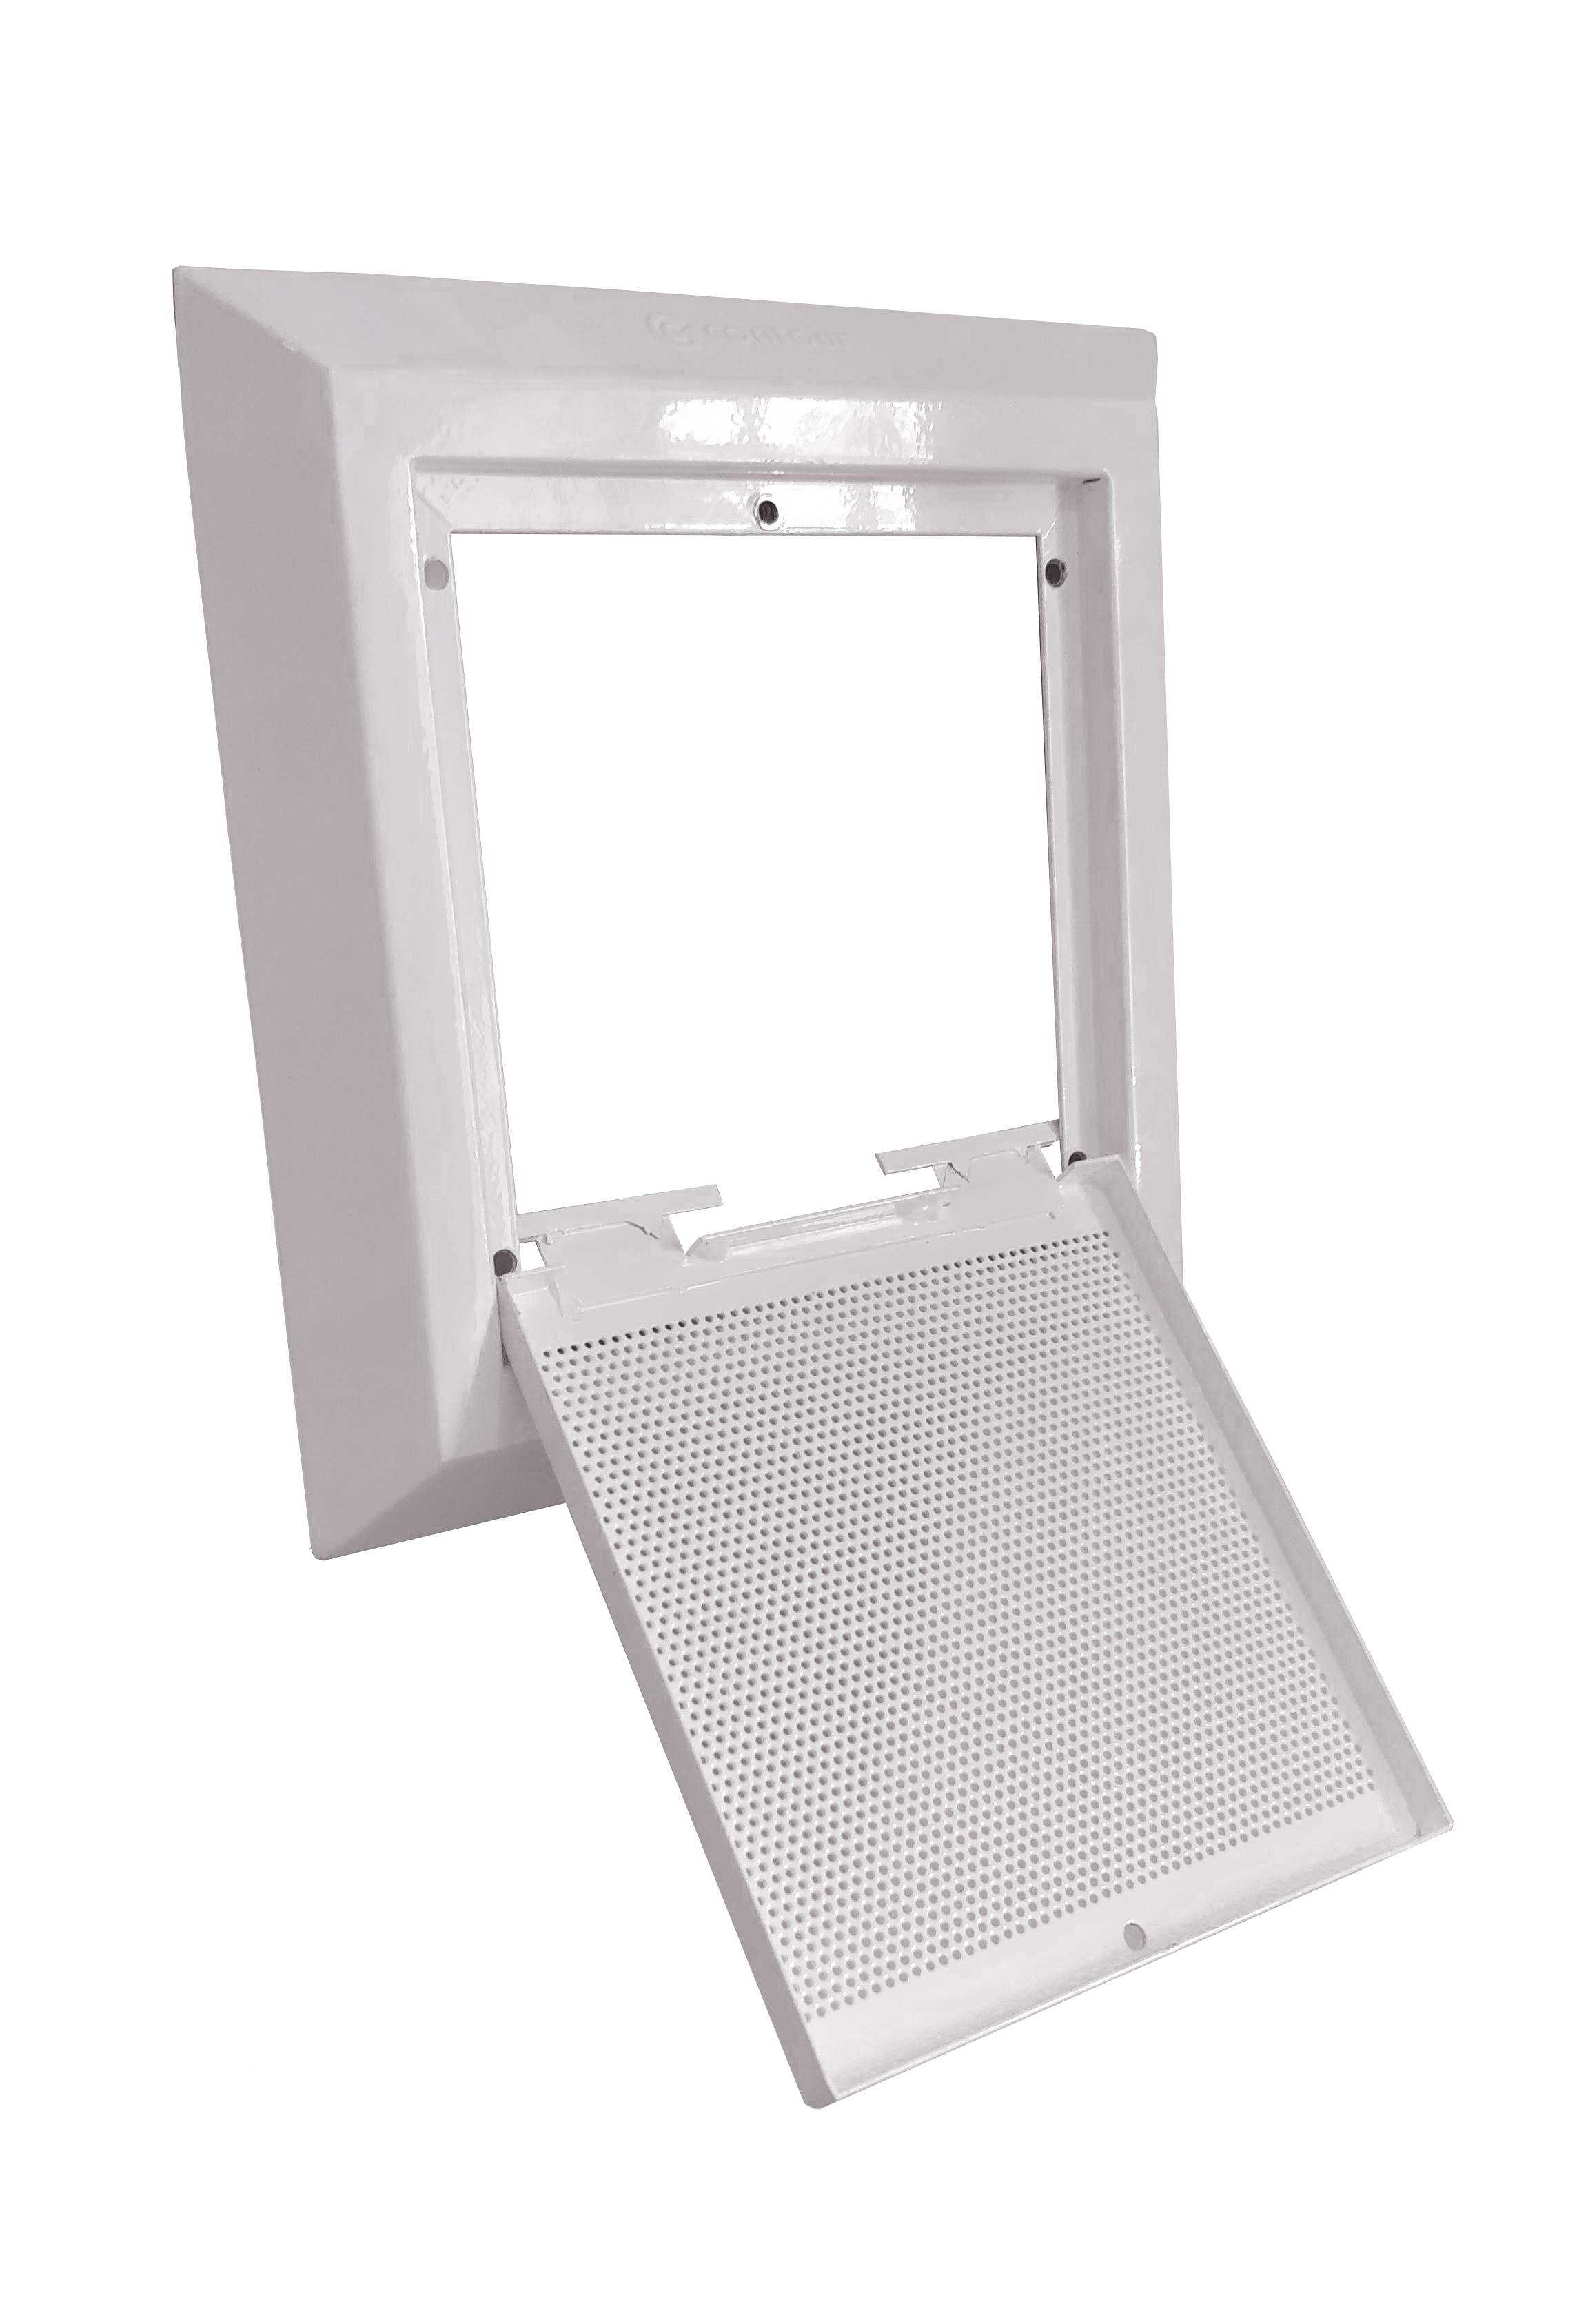 Anti-Ligature Grille Open - Ideal For Mental Health Environments - Contour Heating Experts LST Radiators